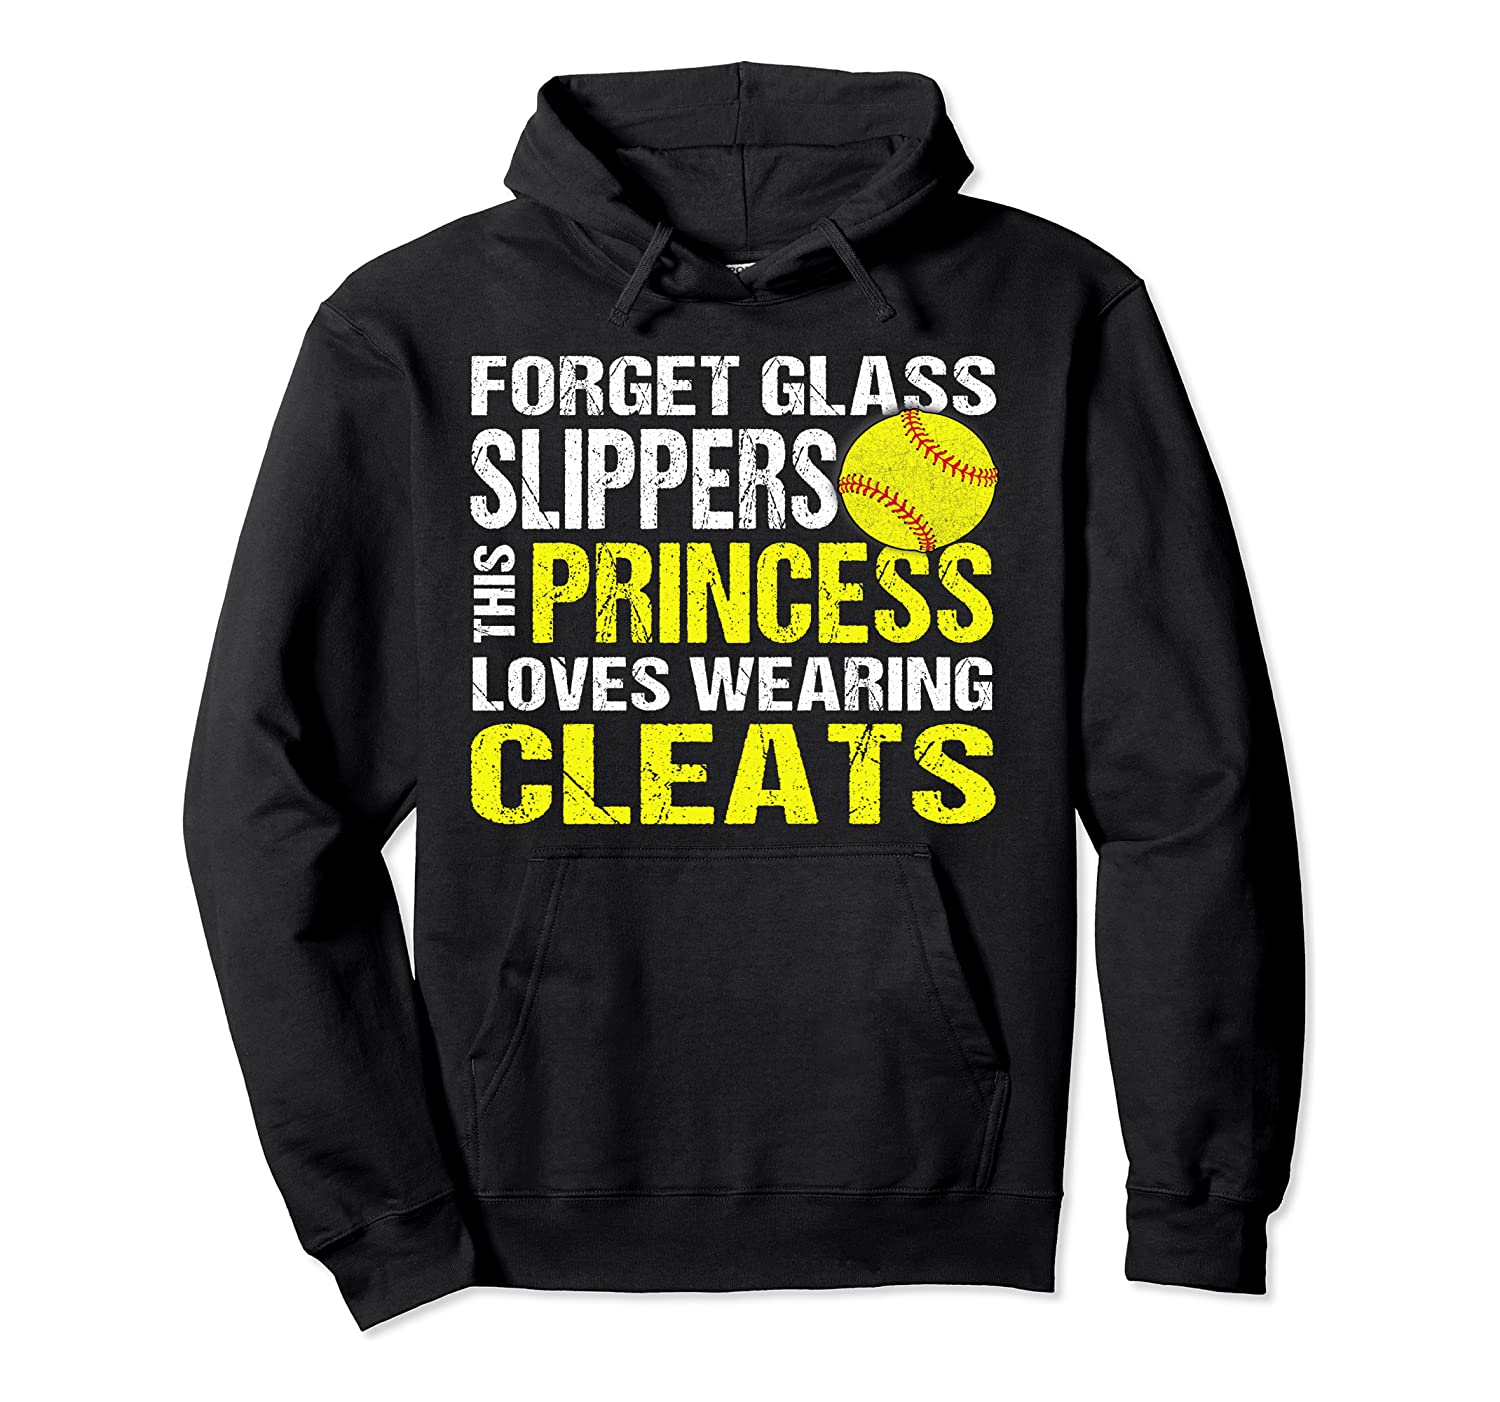 Softball Hoodie Cleats Pitcher Catcher Team Player Gift